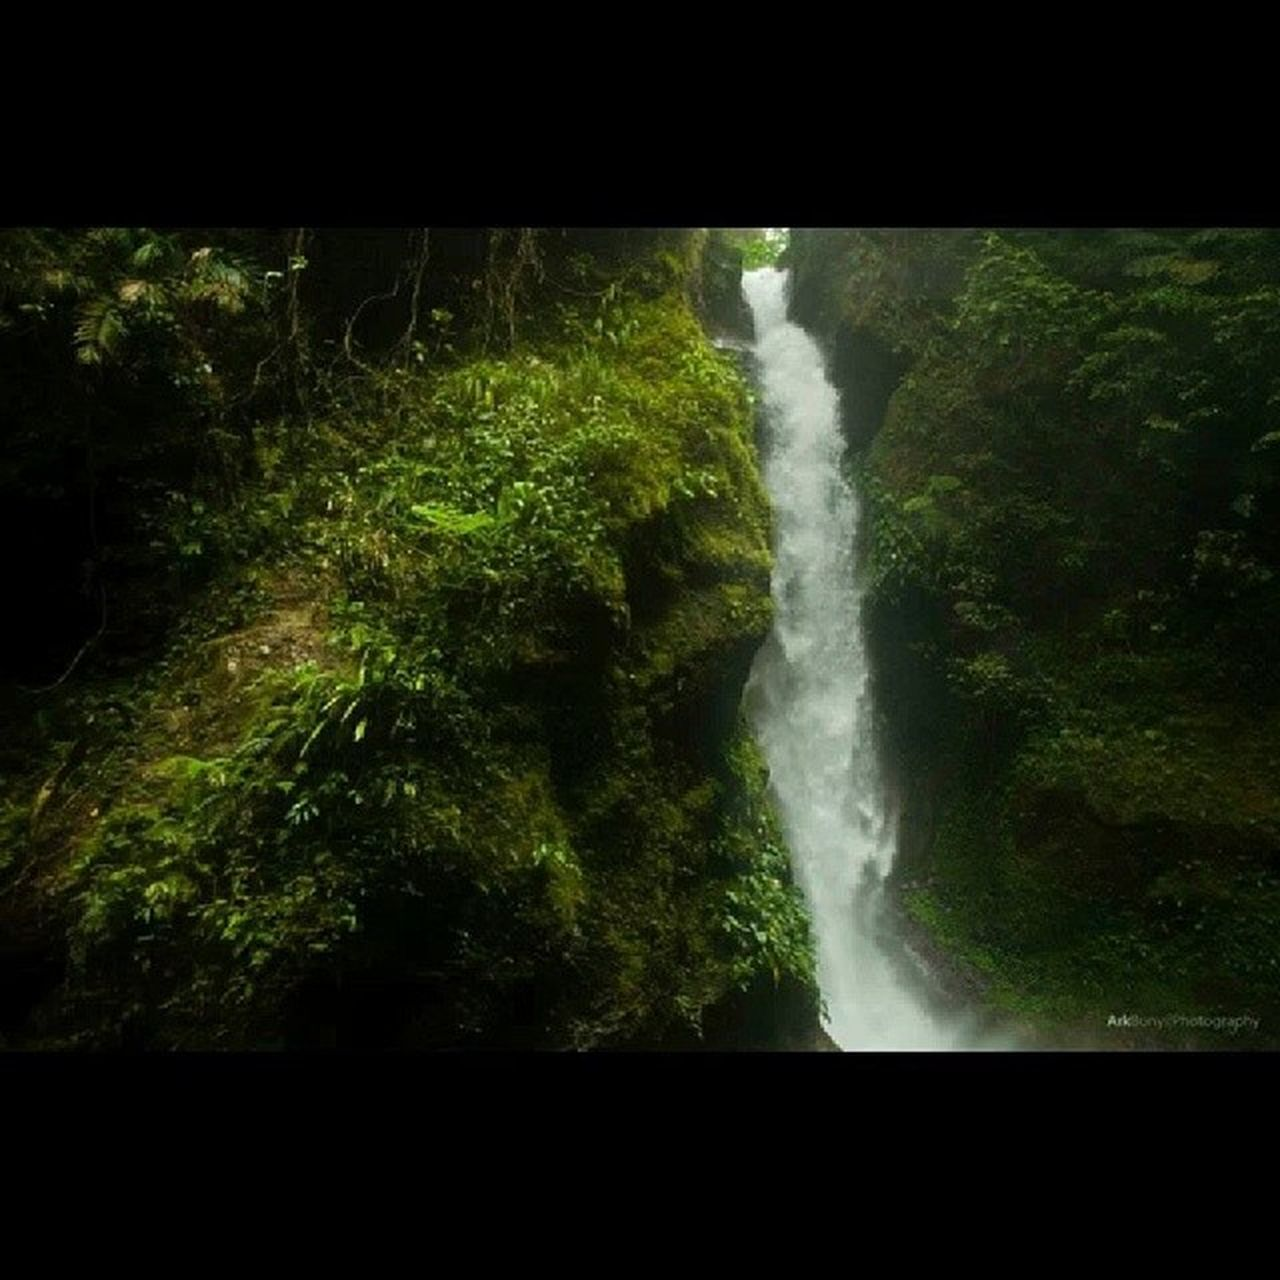 waterfall, motion, forest, no people, nature, scenics, beauty in nature, outdoors, freshness, day